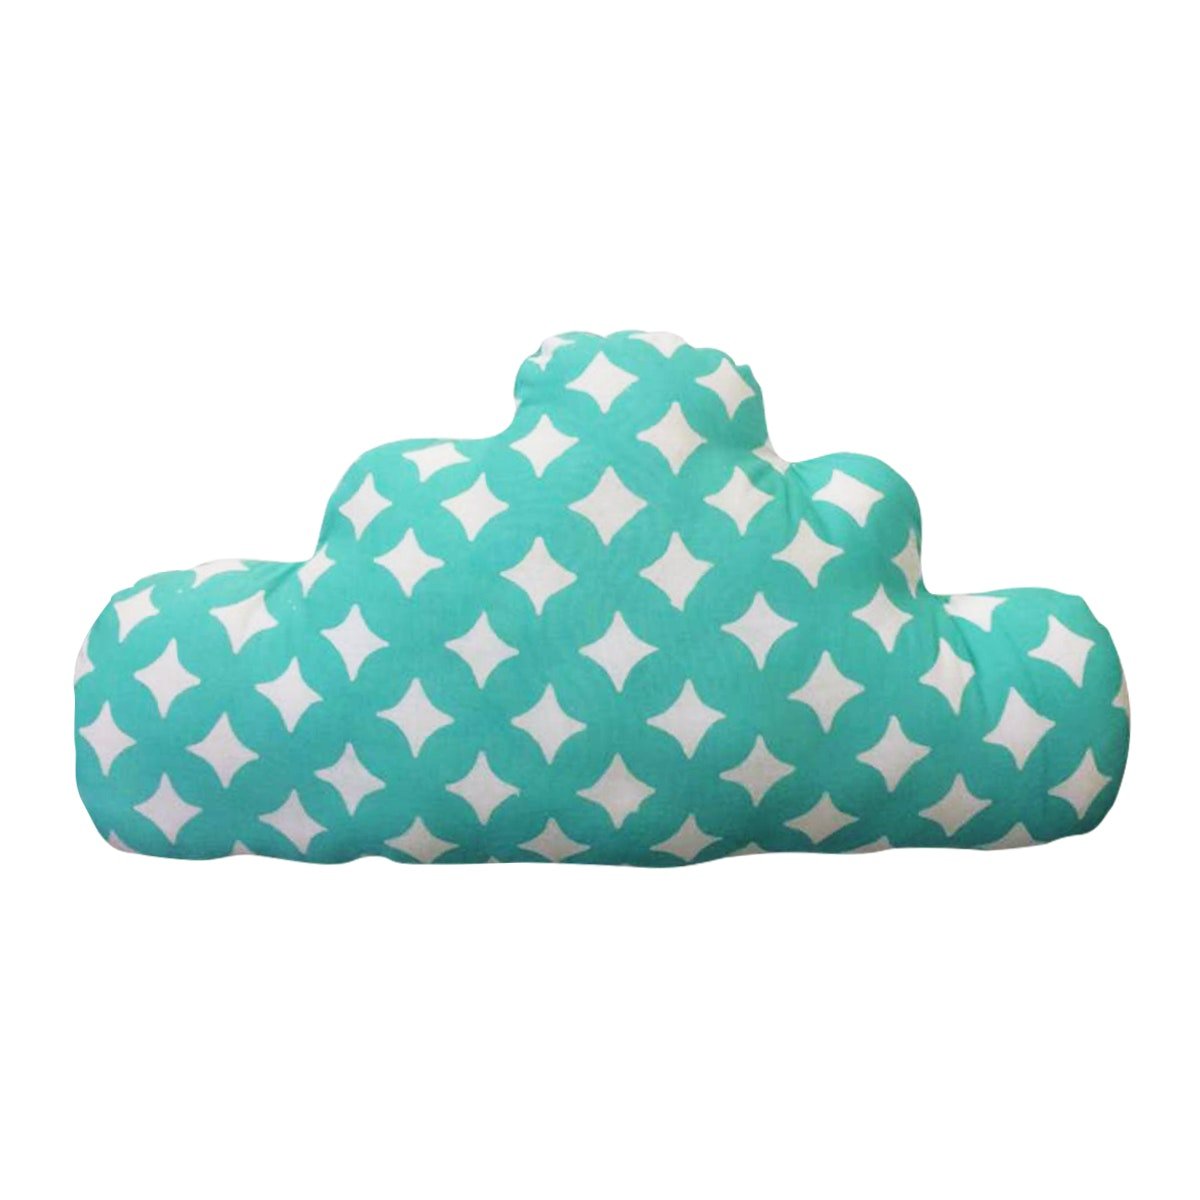 Strawberry Patch Cloud Cushion Batik Toska